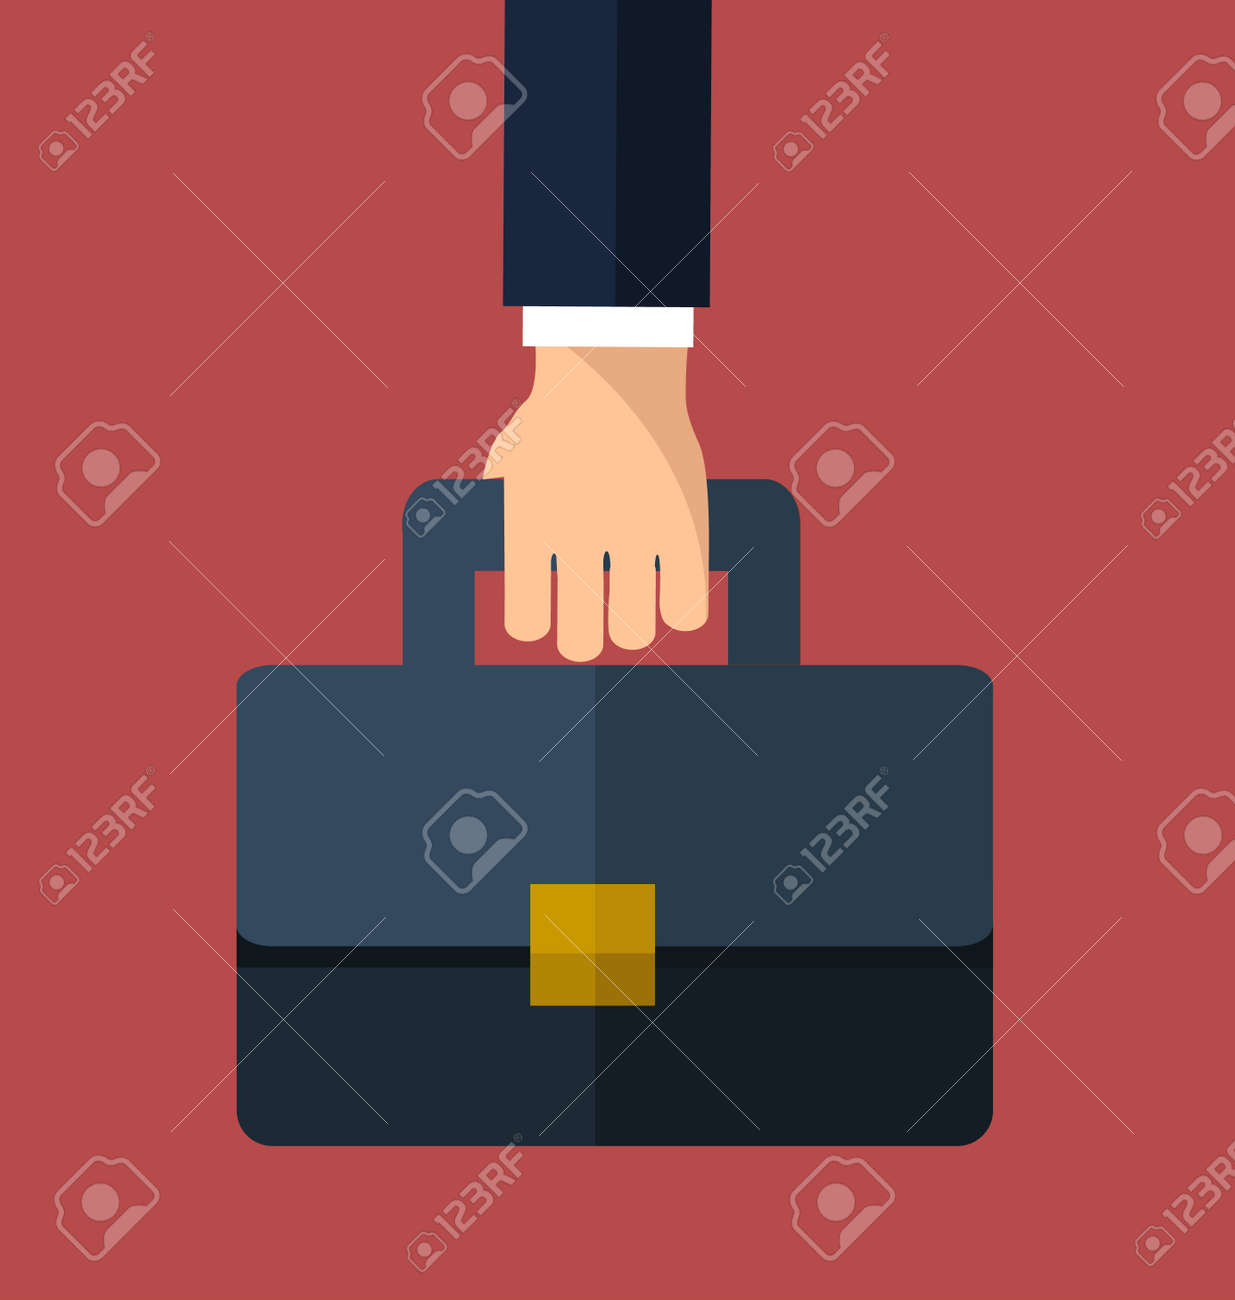 Bussiness, hand holding briefcase. Vector - 168398290